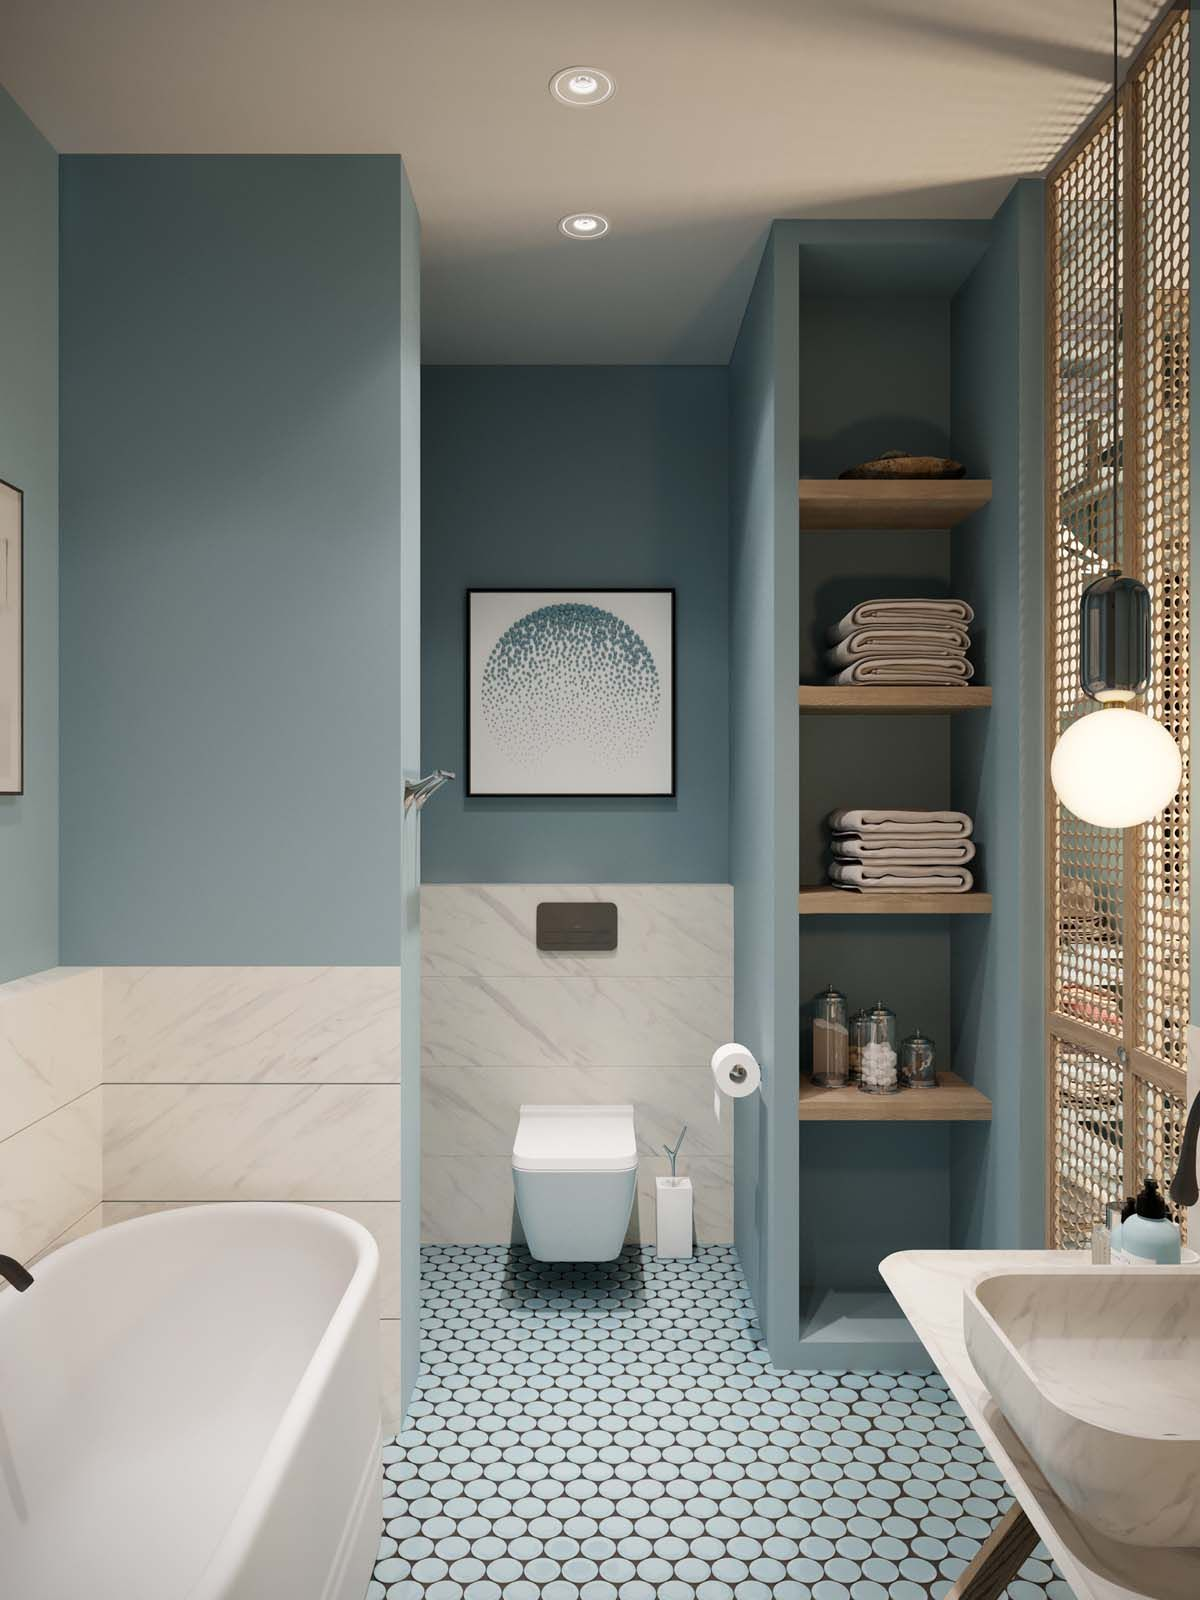 Salle De Bain Ton Pastel ~ while we may often think of pastel colors as appropriate for